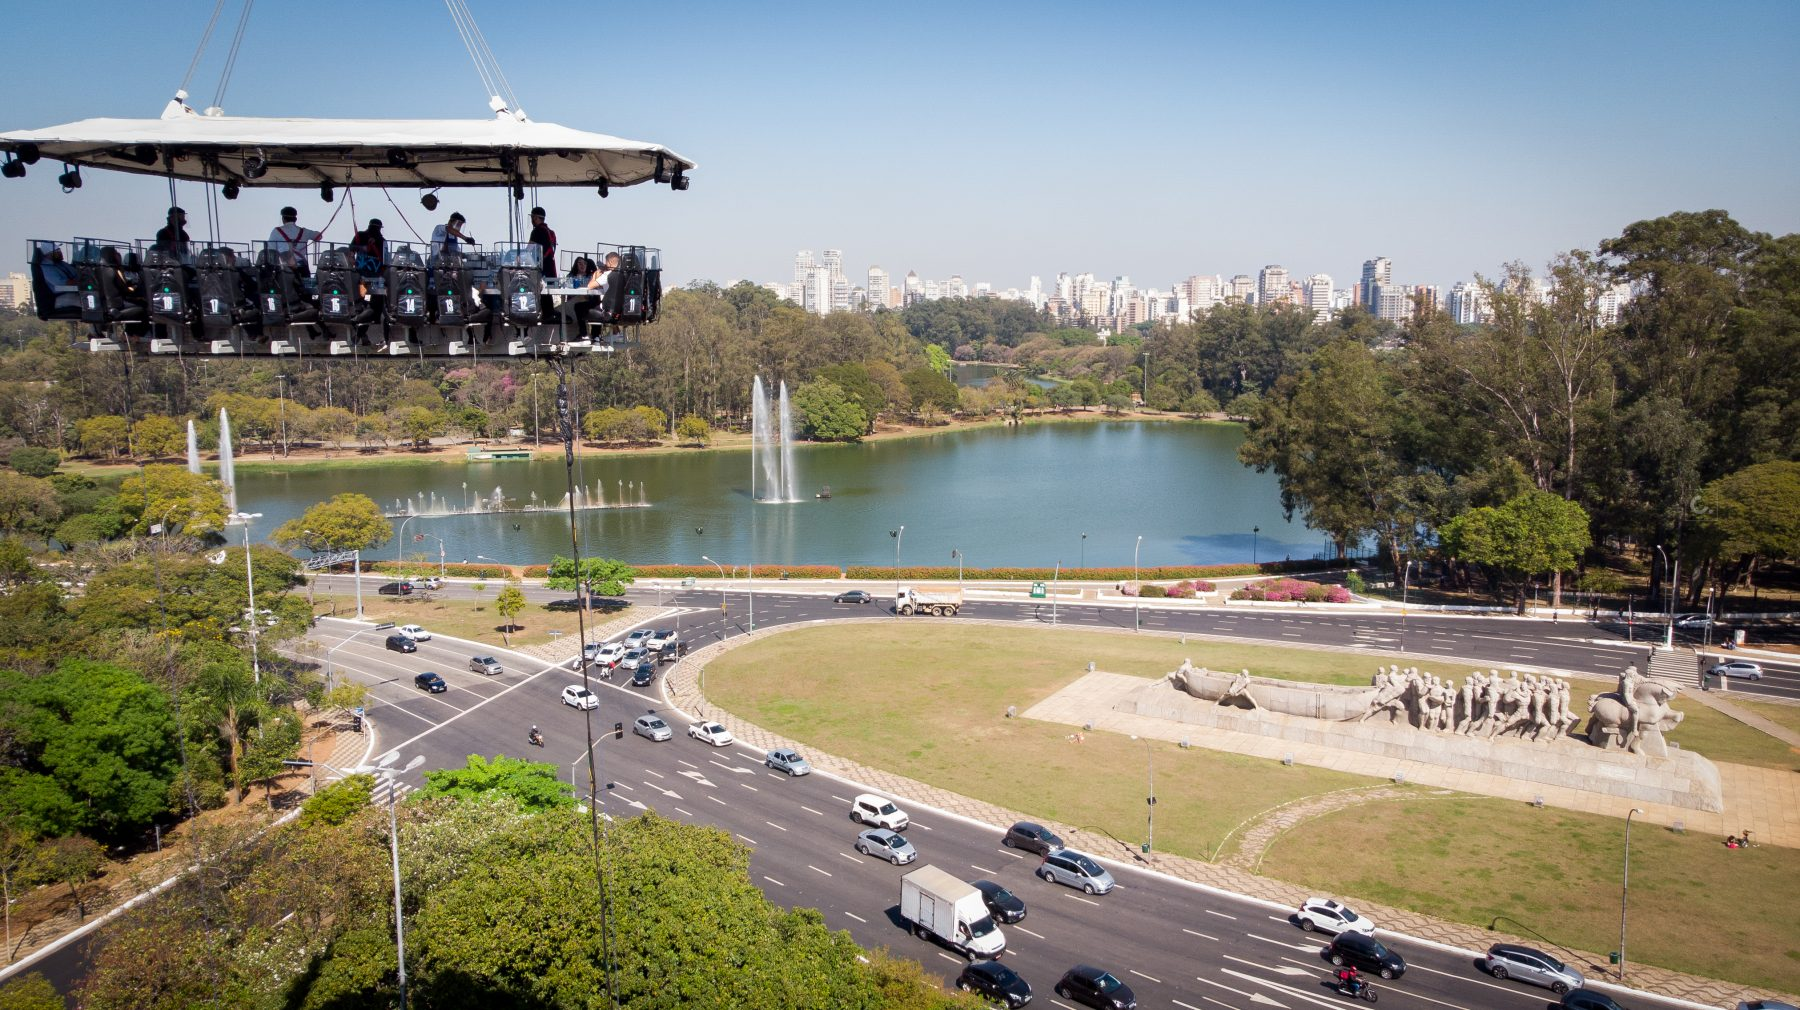 Dinner in the sky 2021 já tem data e local confirmados